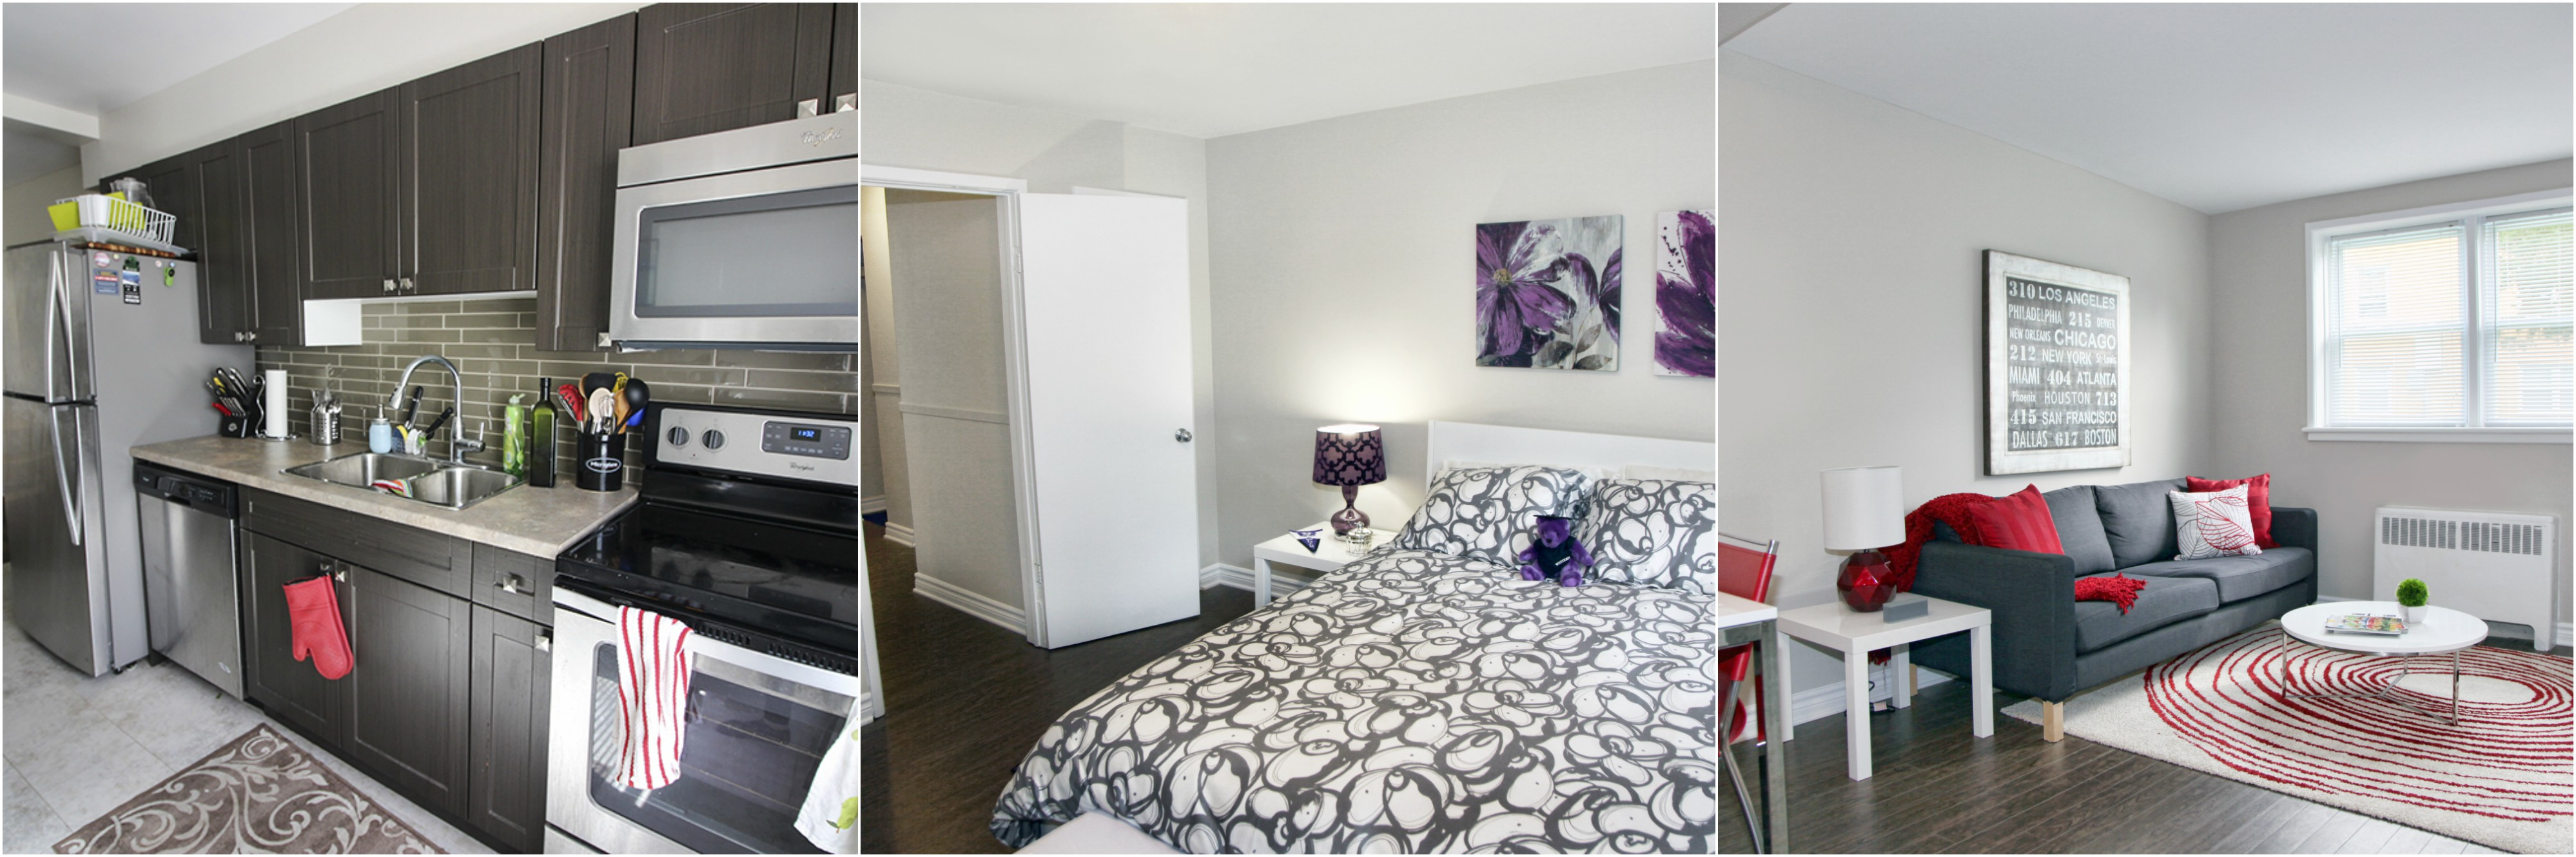 939 Western Apartments - Student Apartments in London ...